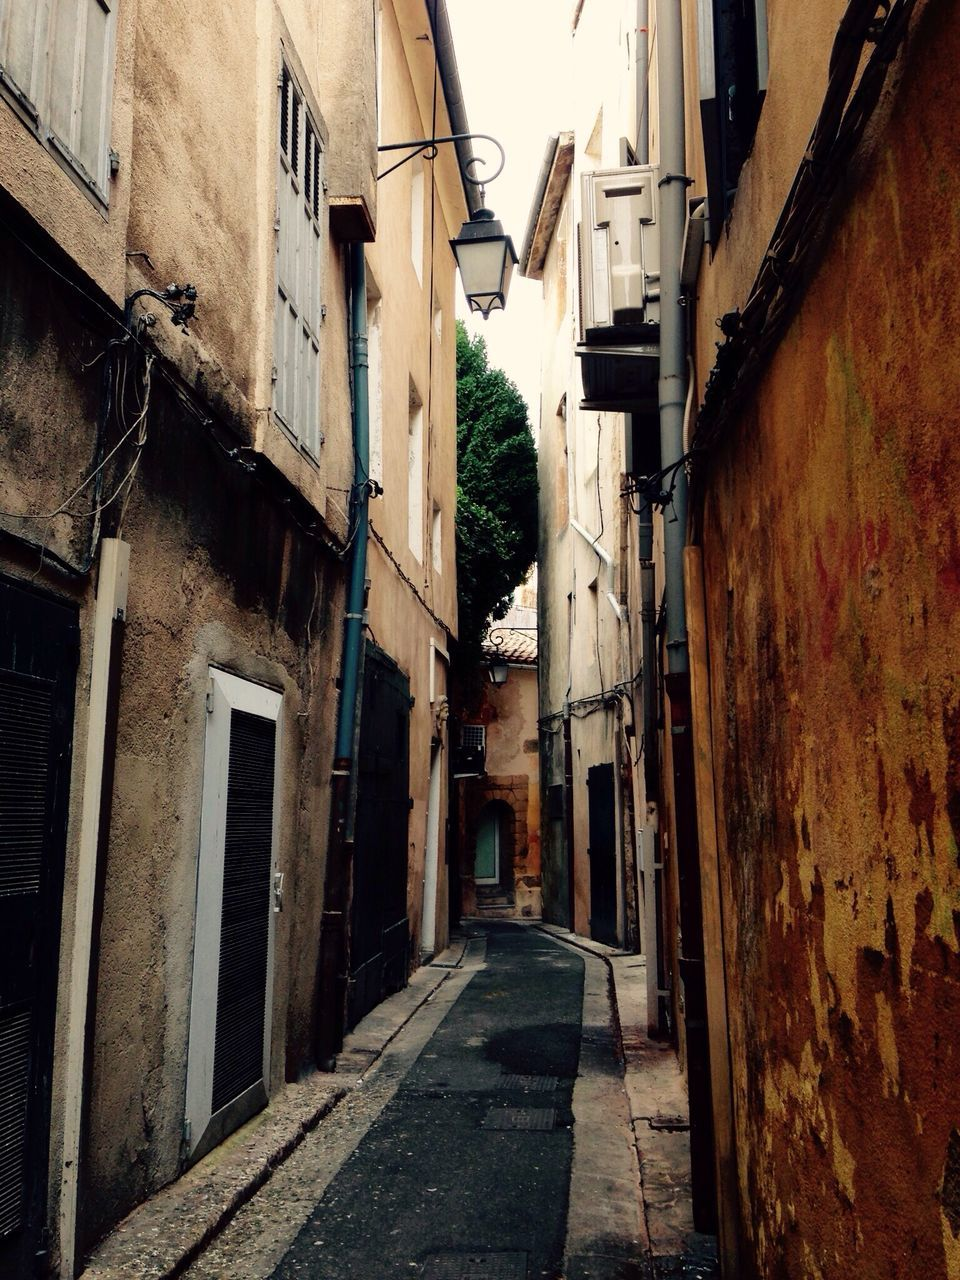 architecture, built structure, building exterior, the way forward, alley, no people, day, outdoors